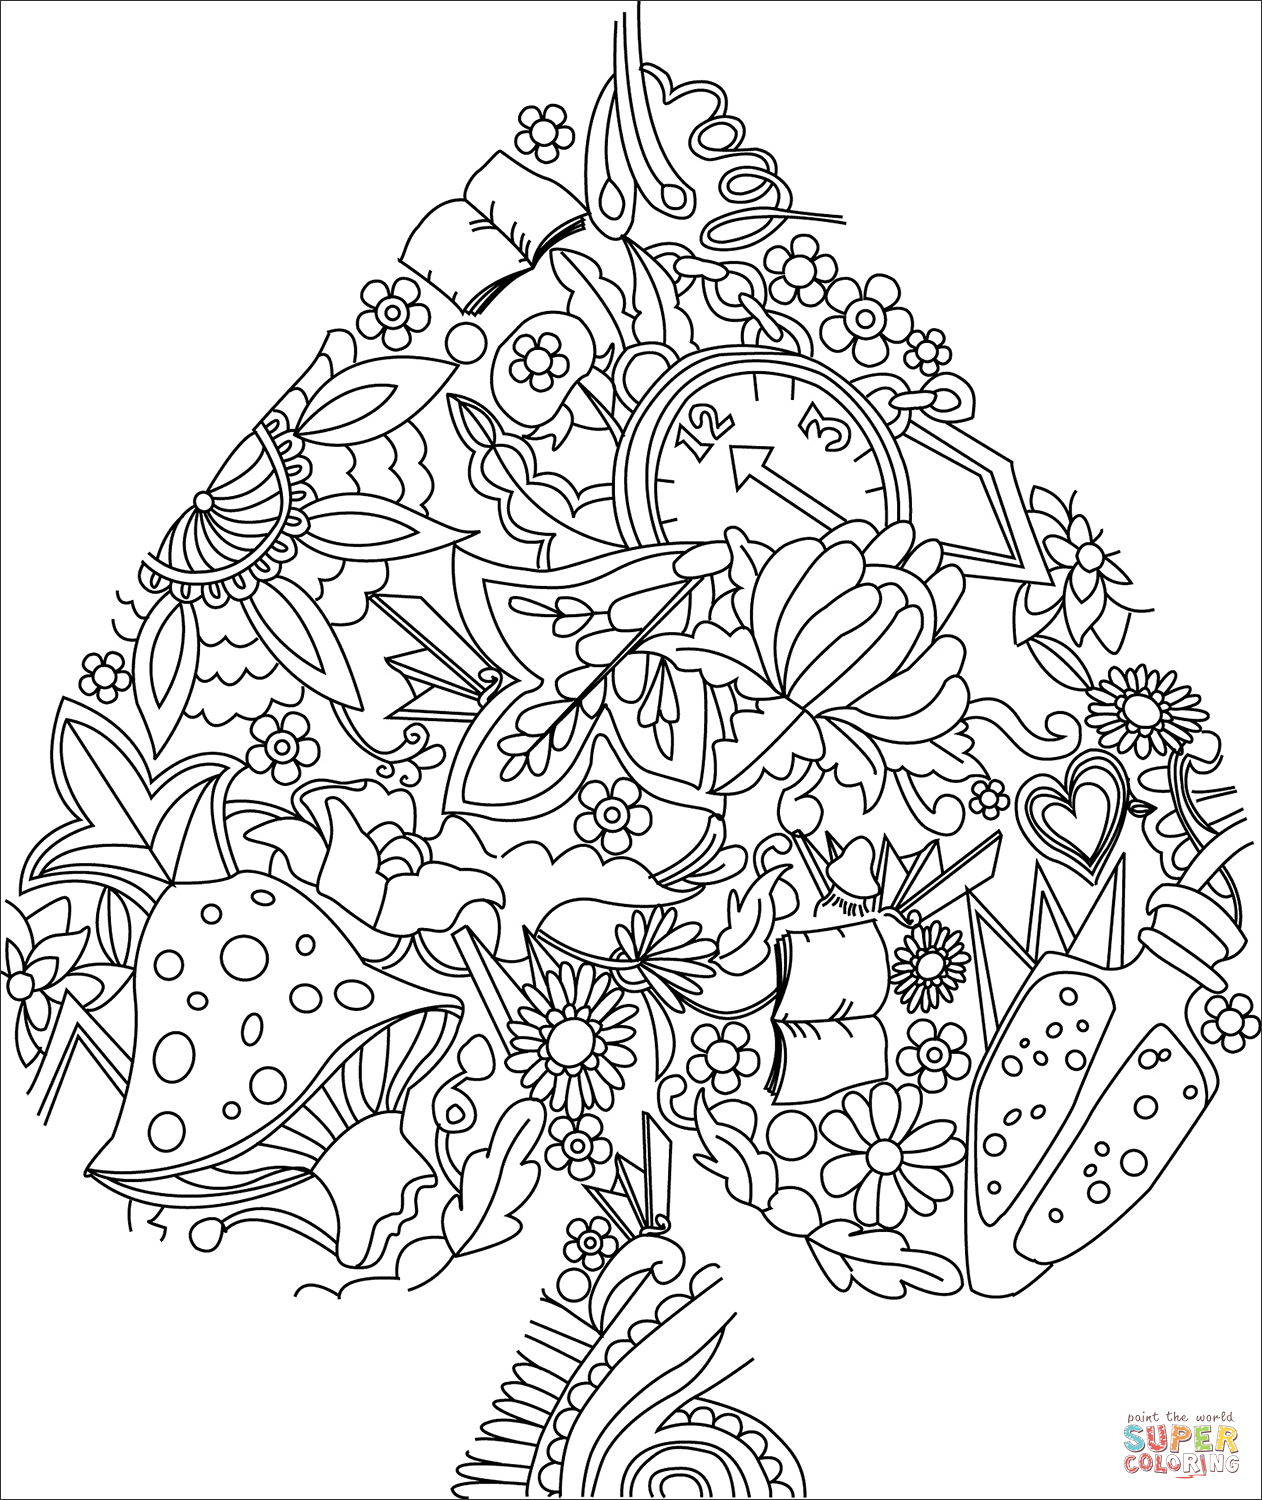 Card Suit Coloring Page